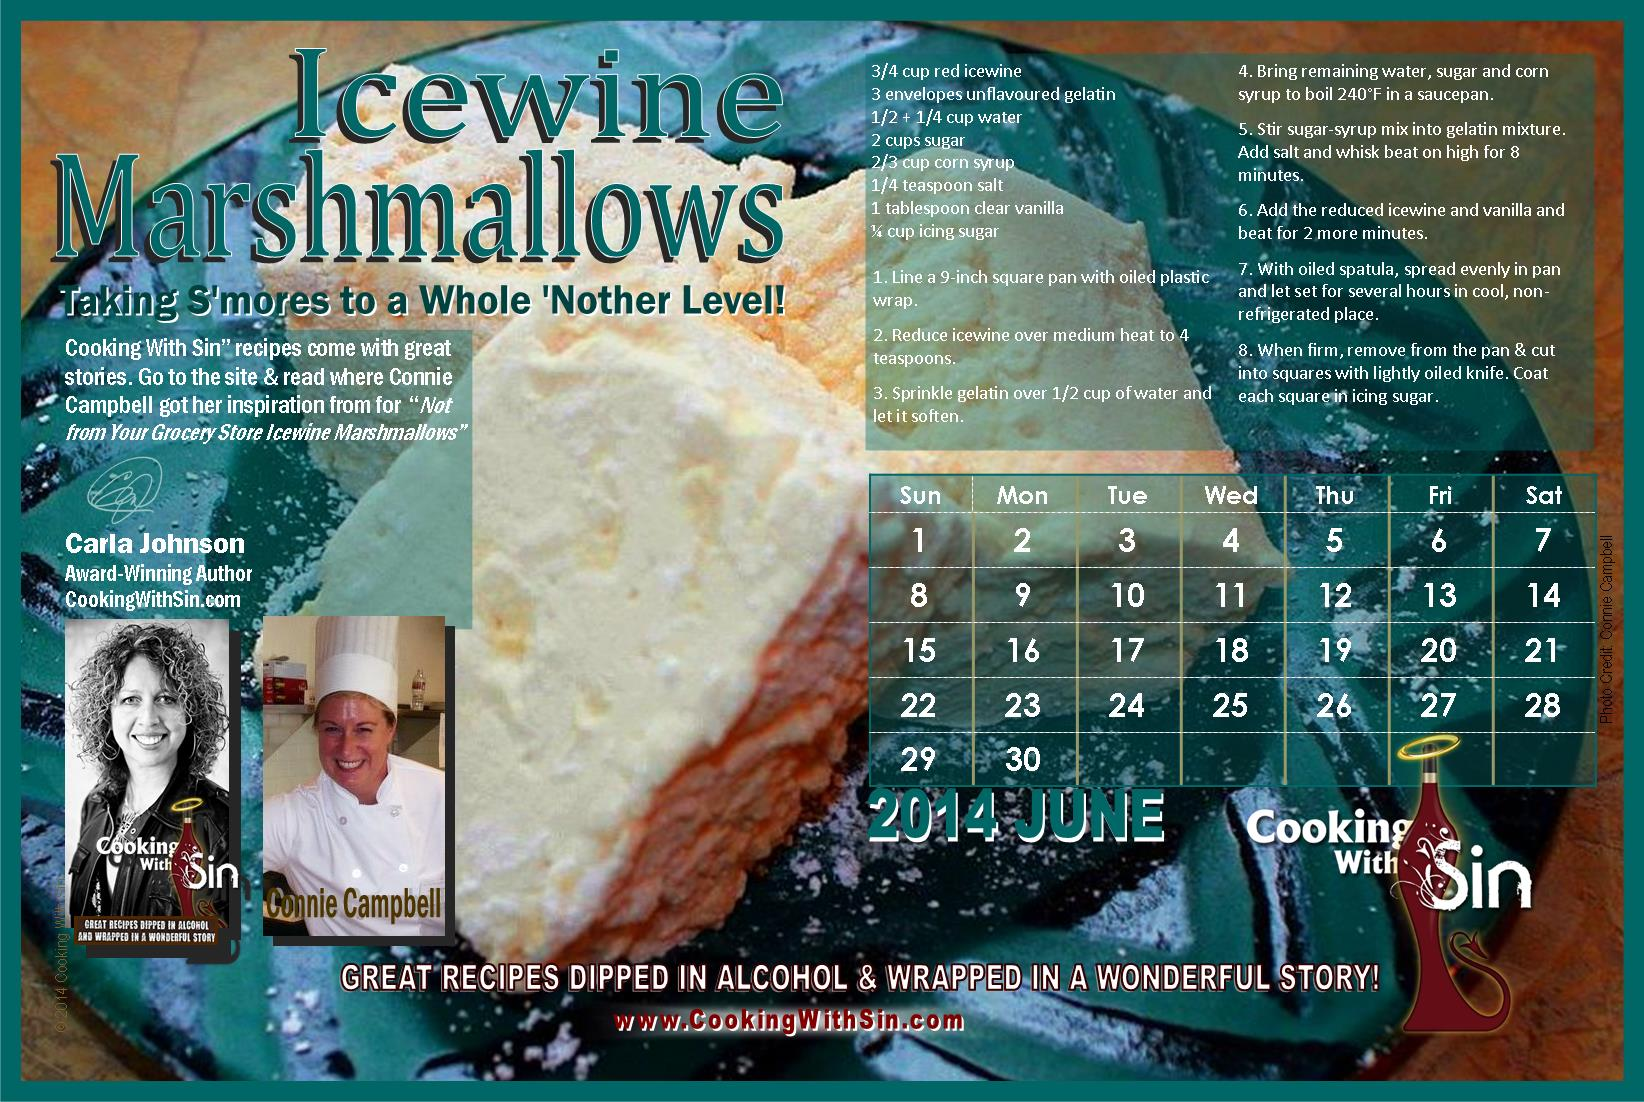 Carla Johnson author Cooking With Sin